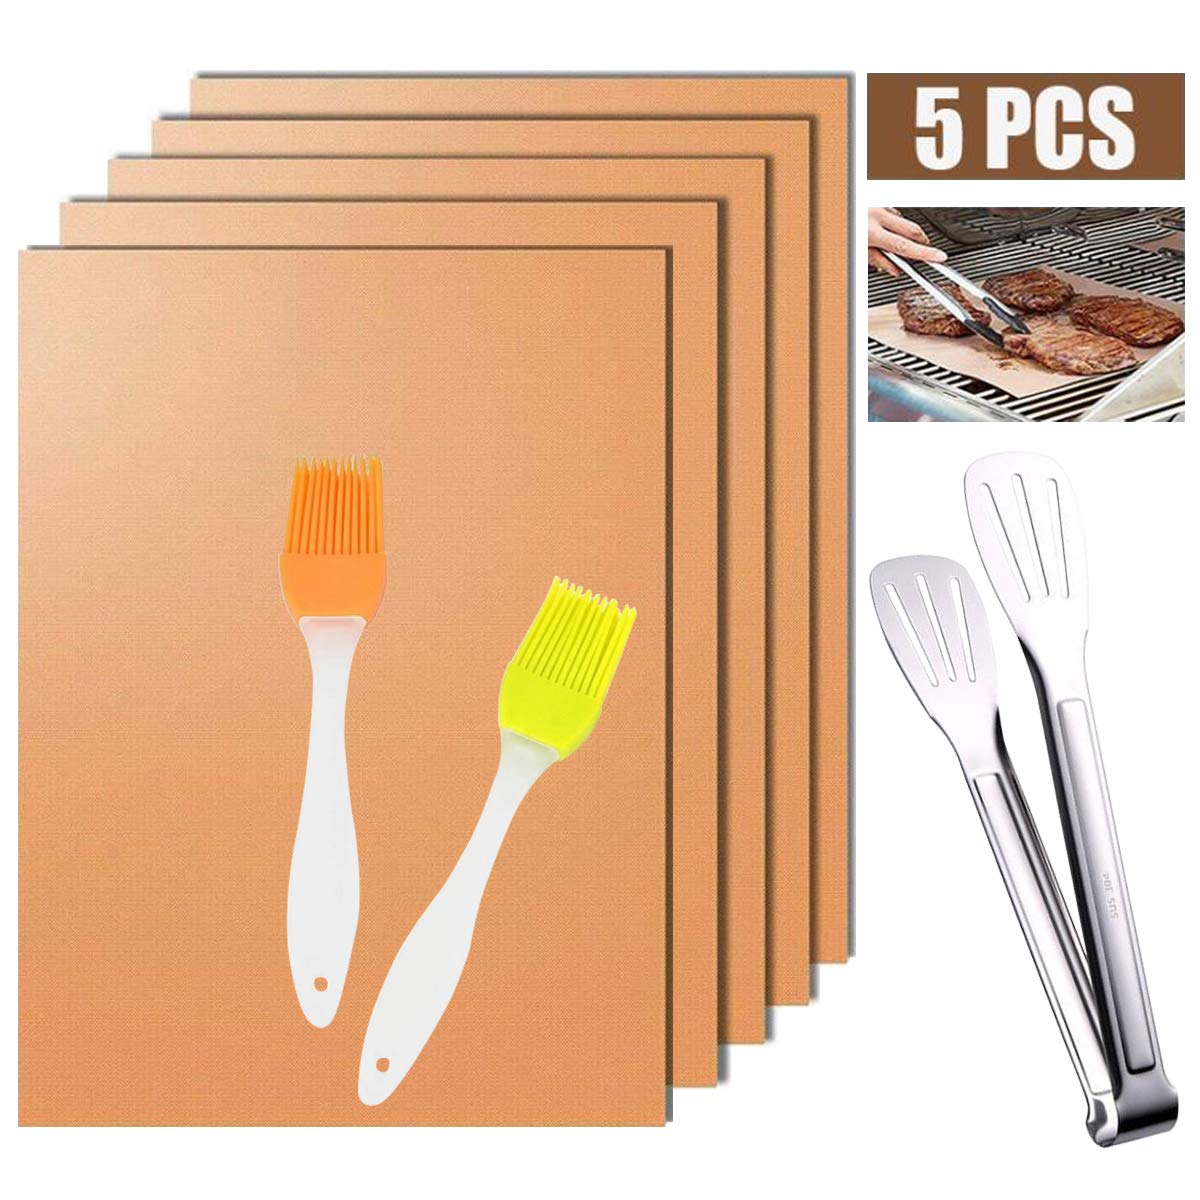 Copper Grill Mat Non-stick BBQ Grill & Baking Mats(Set of 5)FDA-Approved, Reusable Easy to Clean Works on Gas, Charcoal, Electric GrillSheet with 2 Silicone BBQ Brushes & 1 Kitchen Tongs 15.8x13 In by PapaKoyal